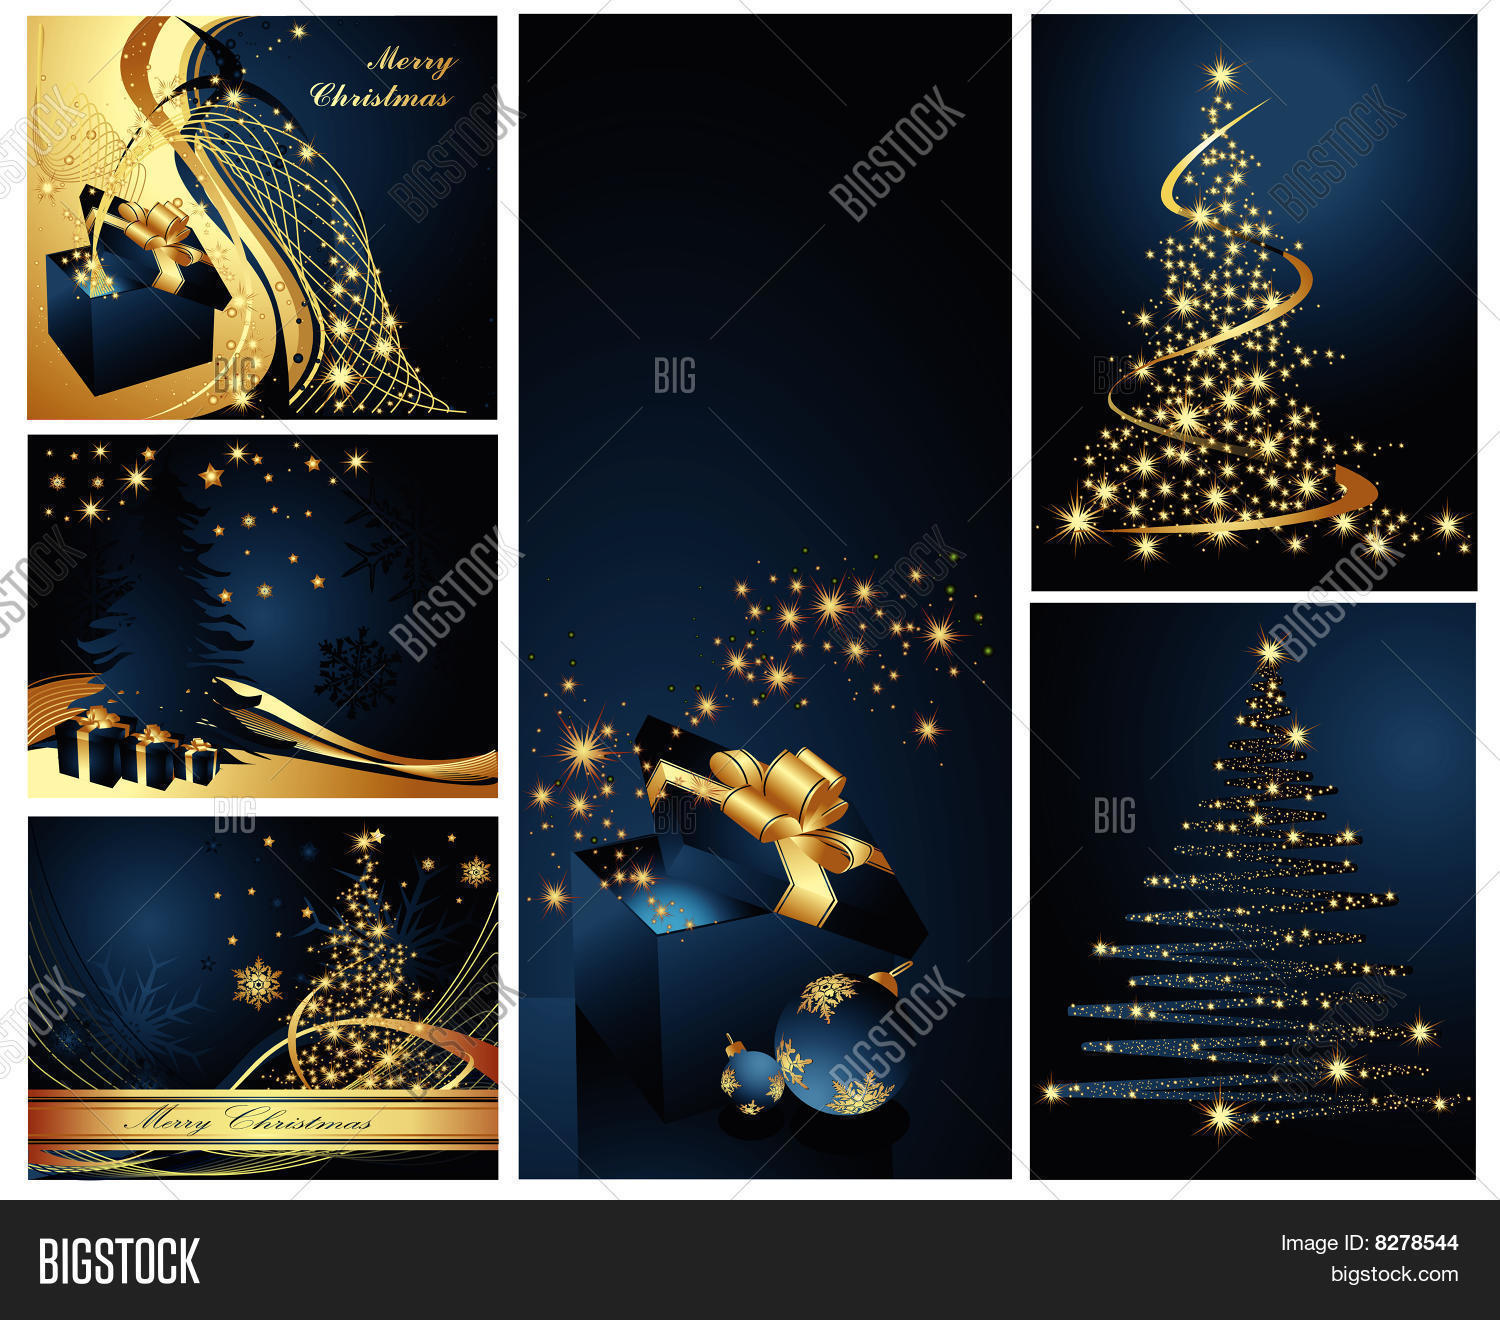 2011,2012,2012 year,abstract,background,bell,blue,candle,card,christmas,christmas tree,christmas tree background,christmas tree vector,christmas wreath,circle,cold,collection,december,decoration,frame,frost,frozen,gift,glow,gold,gradient,greeting,happy,happy new year,holiday,ice,illustration,january,light,line,merry,merry christmas,merry christmas and happy new year,new,new year,new year background,new years,radiance,ring,season,shadow,snow,snowflake,star,tree,vector,winter,wreath,year